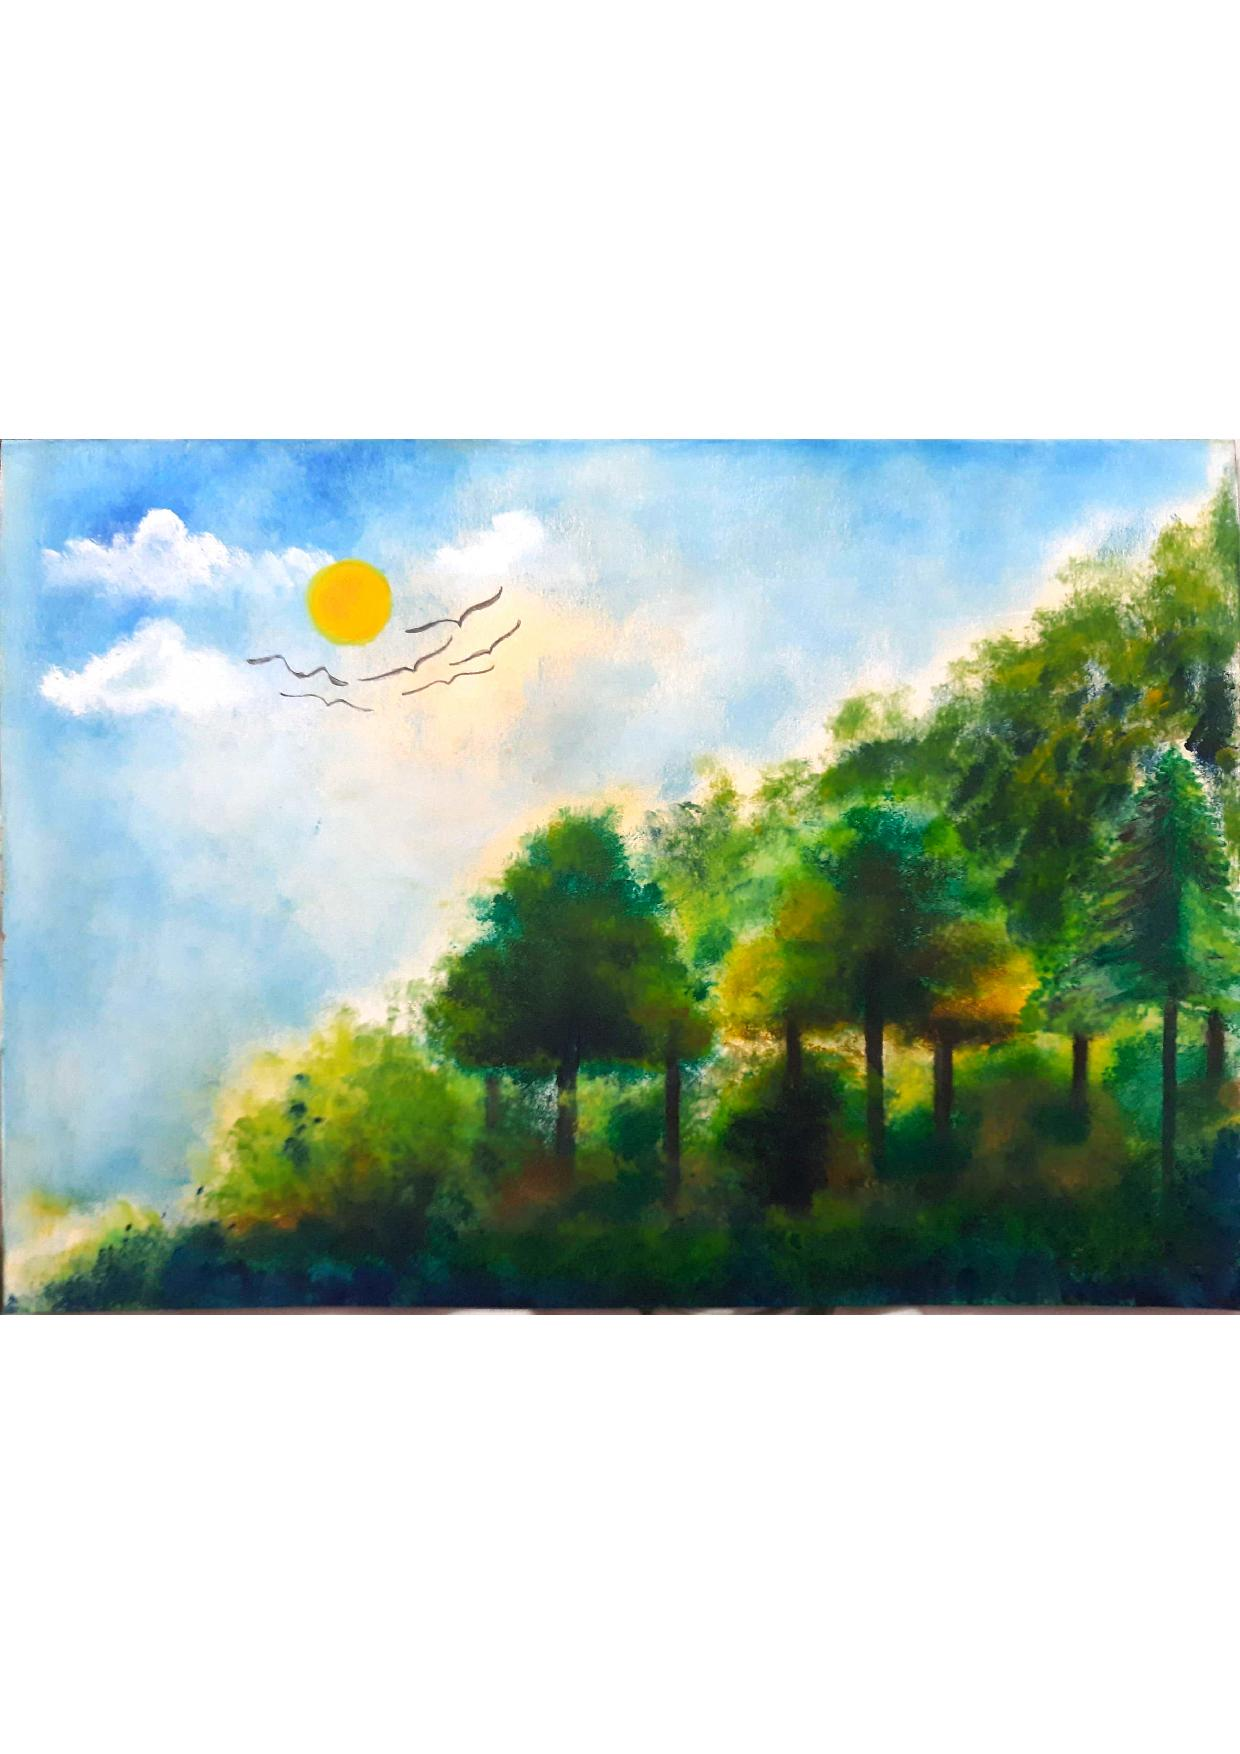 Saswati's Oil Paint Dreamland